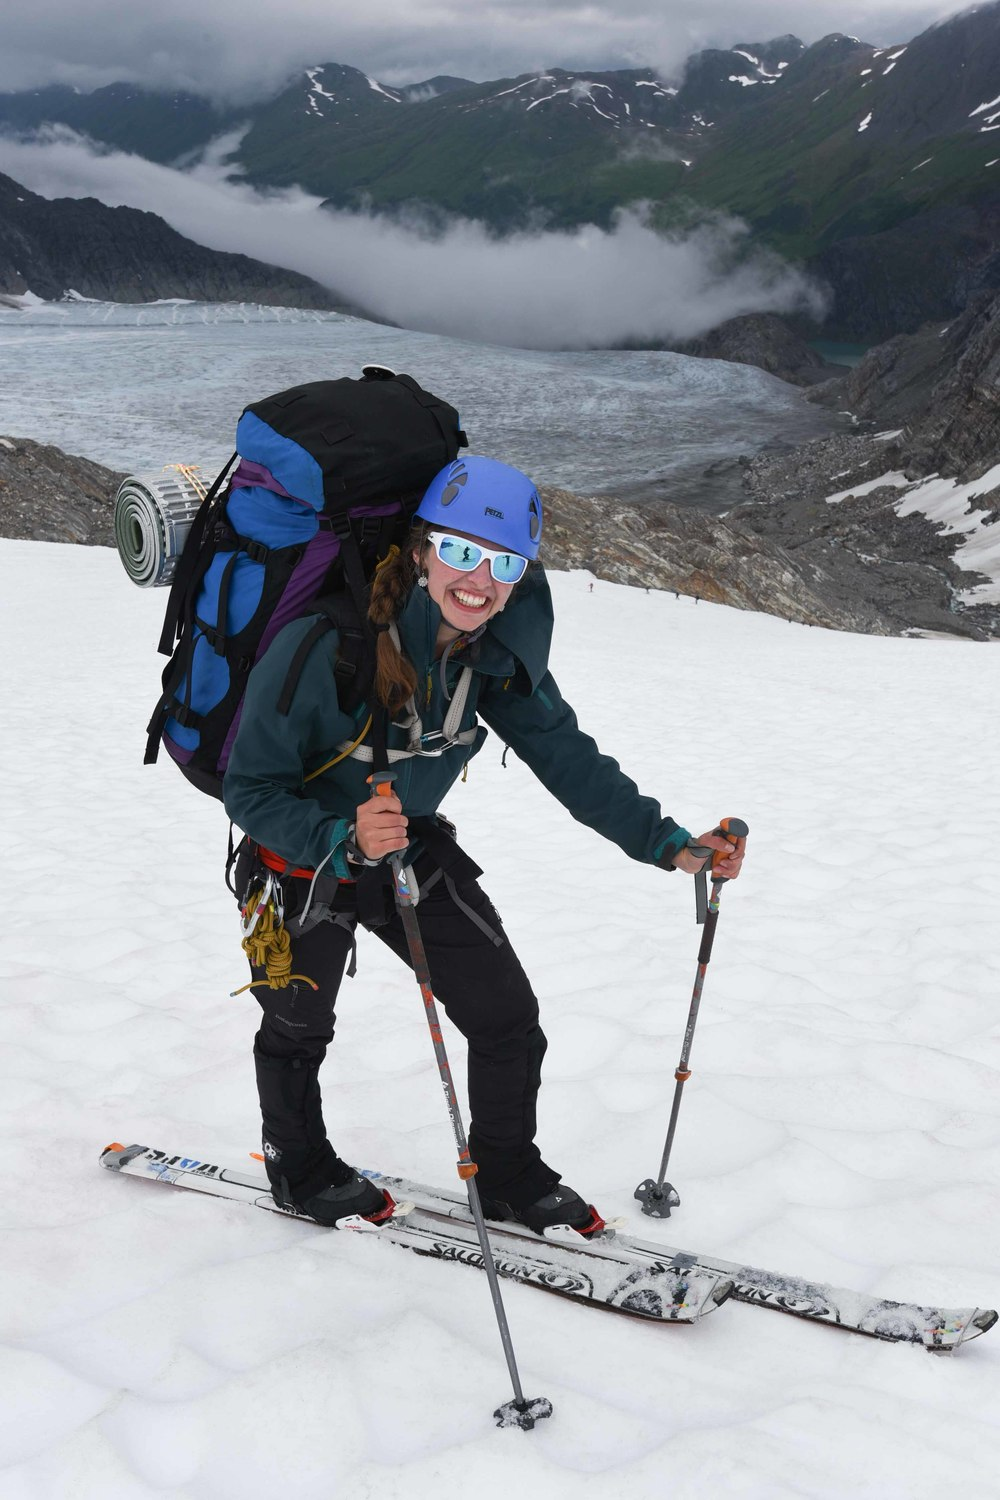 Author Mo Michels on the ski traverse from Camp 17 to Camp 10. Photo courtesy of PBJ Photography